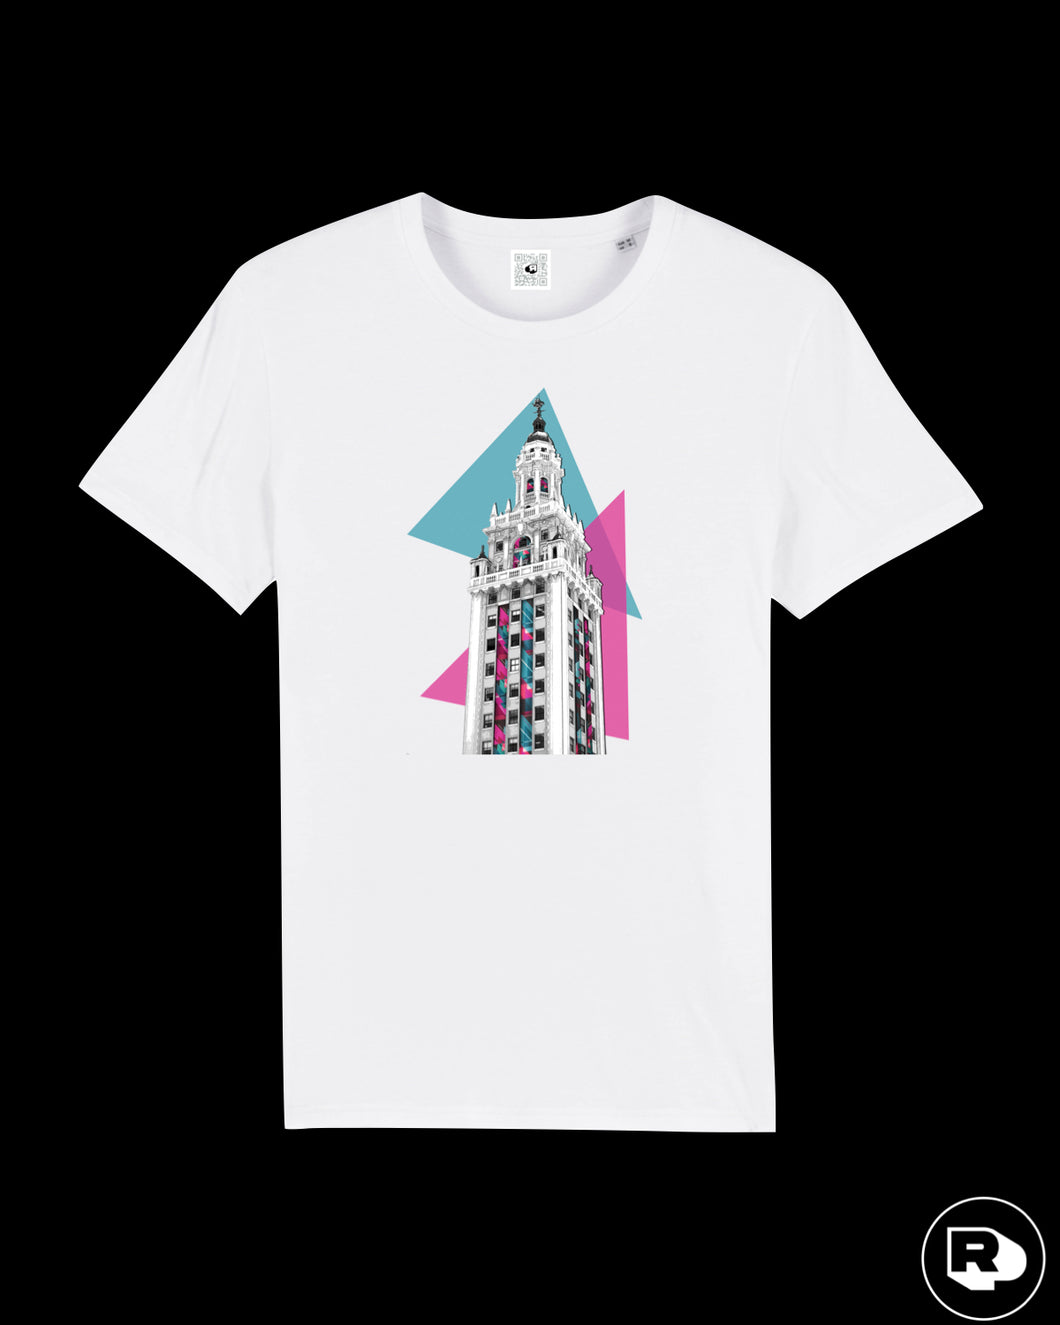 Riposte Freedom Tower t-shirt